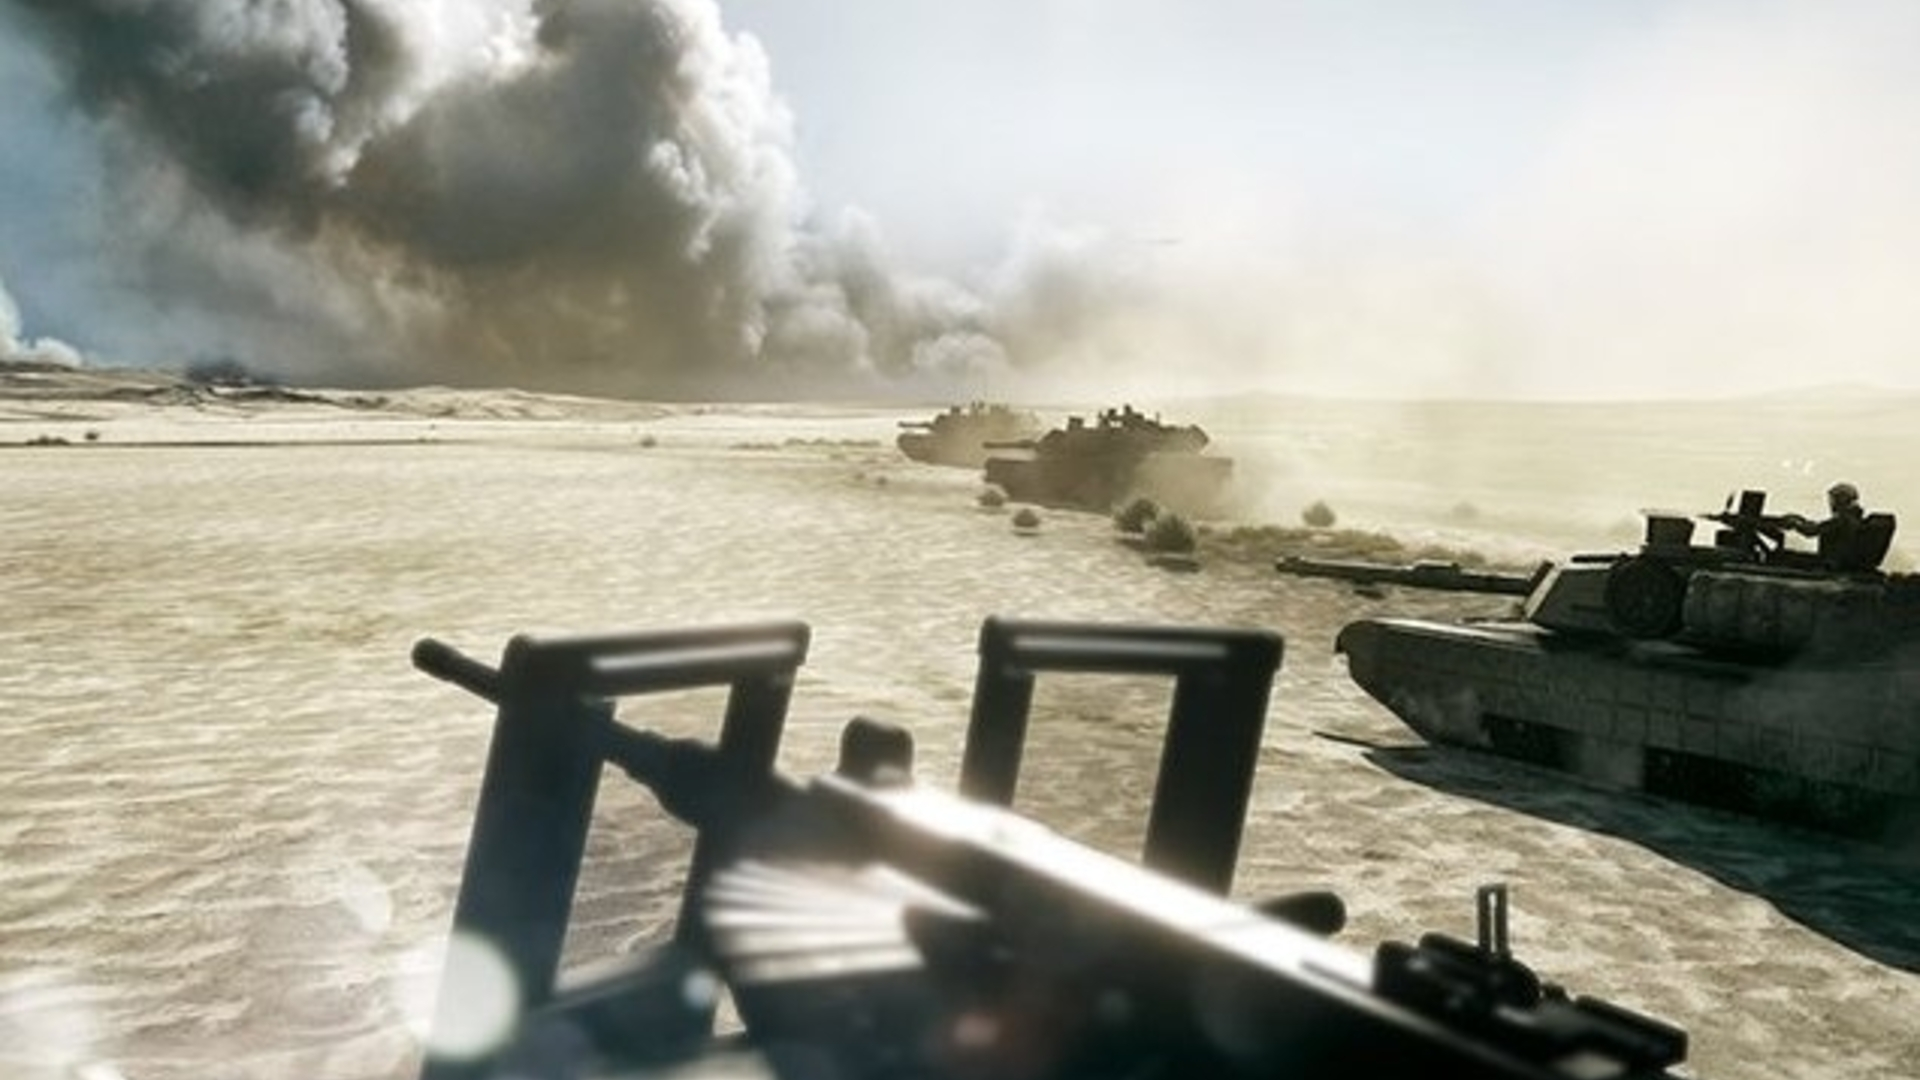 Battlefield 3 is free on Origin for a week